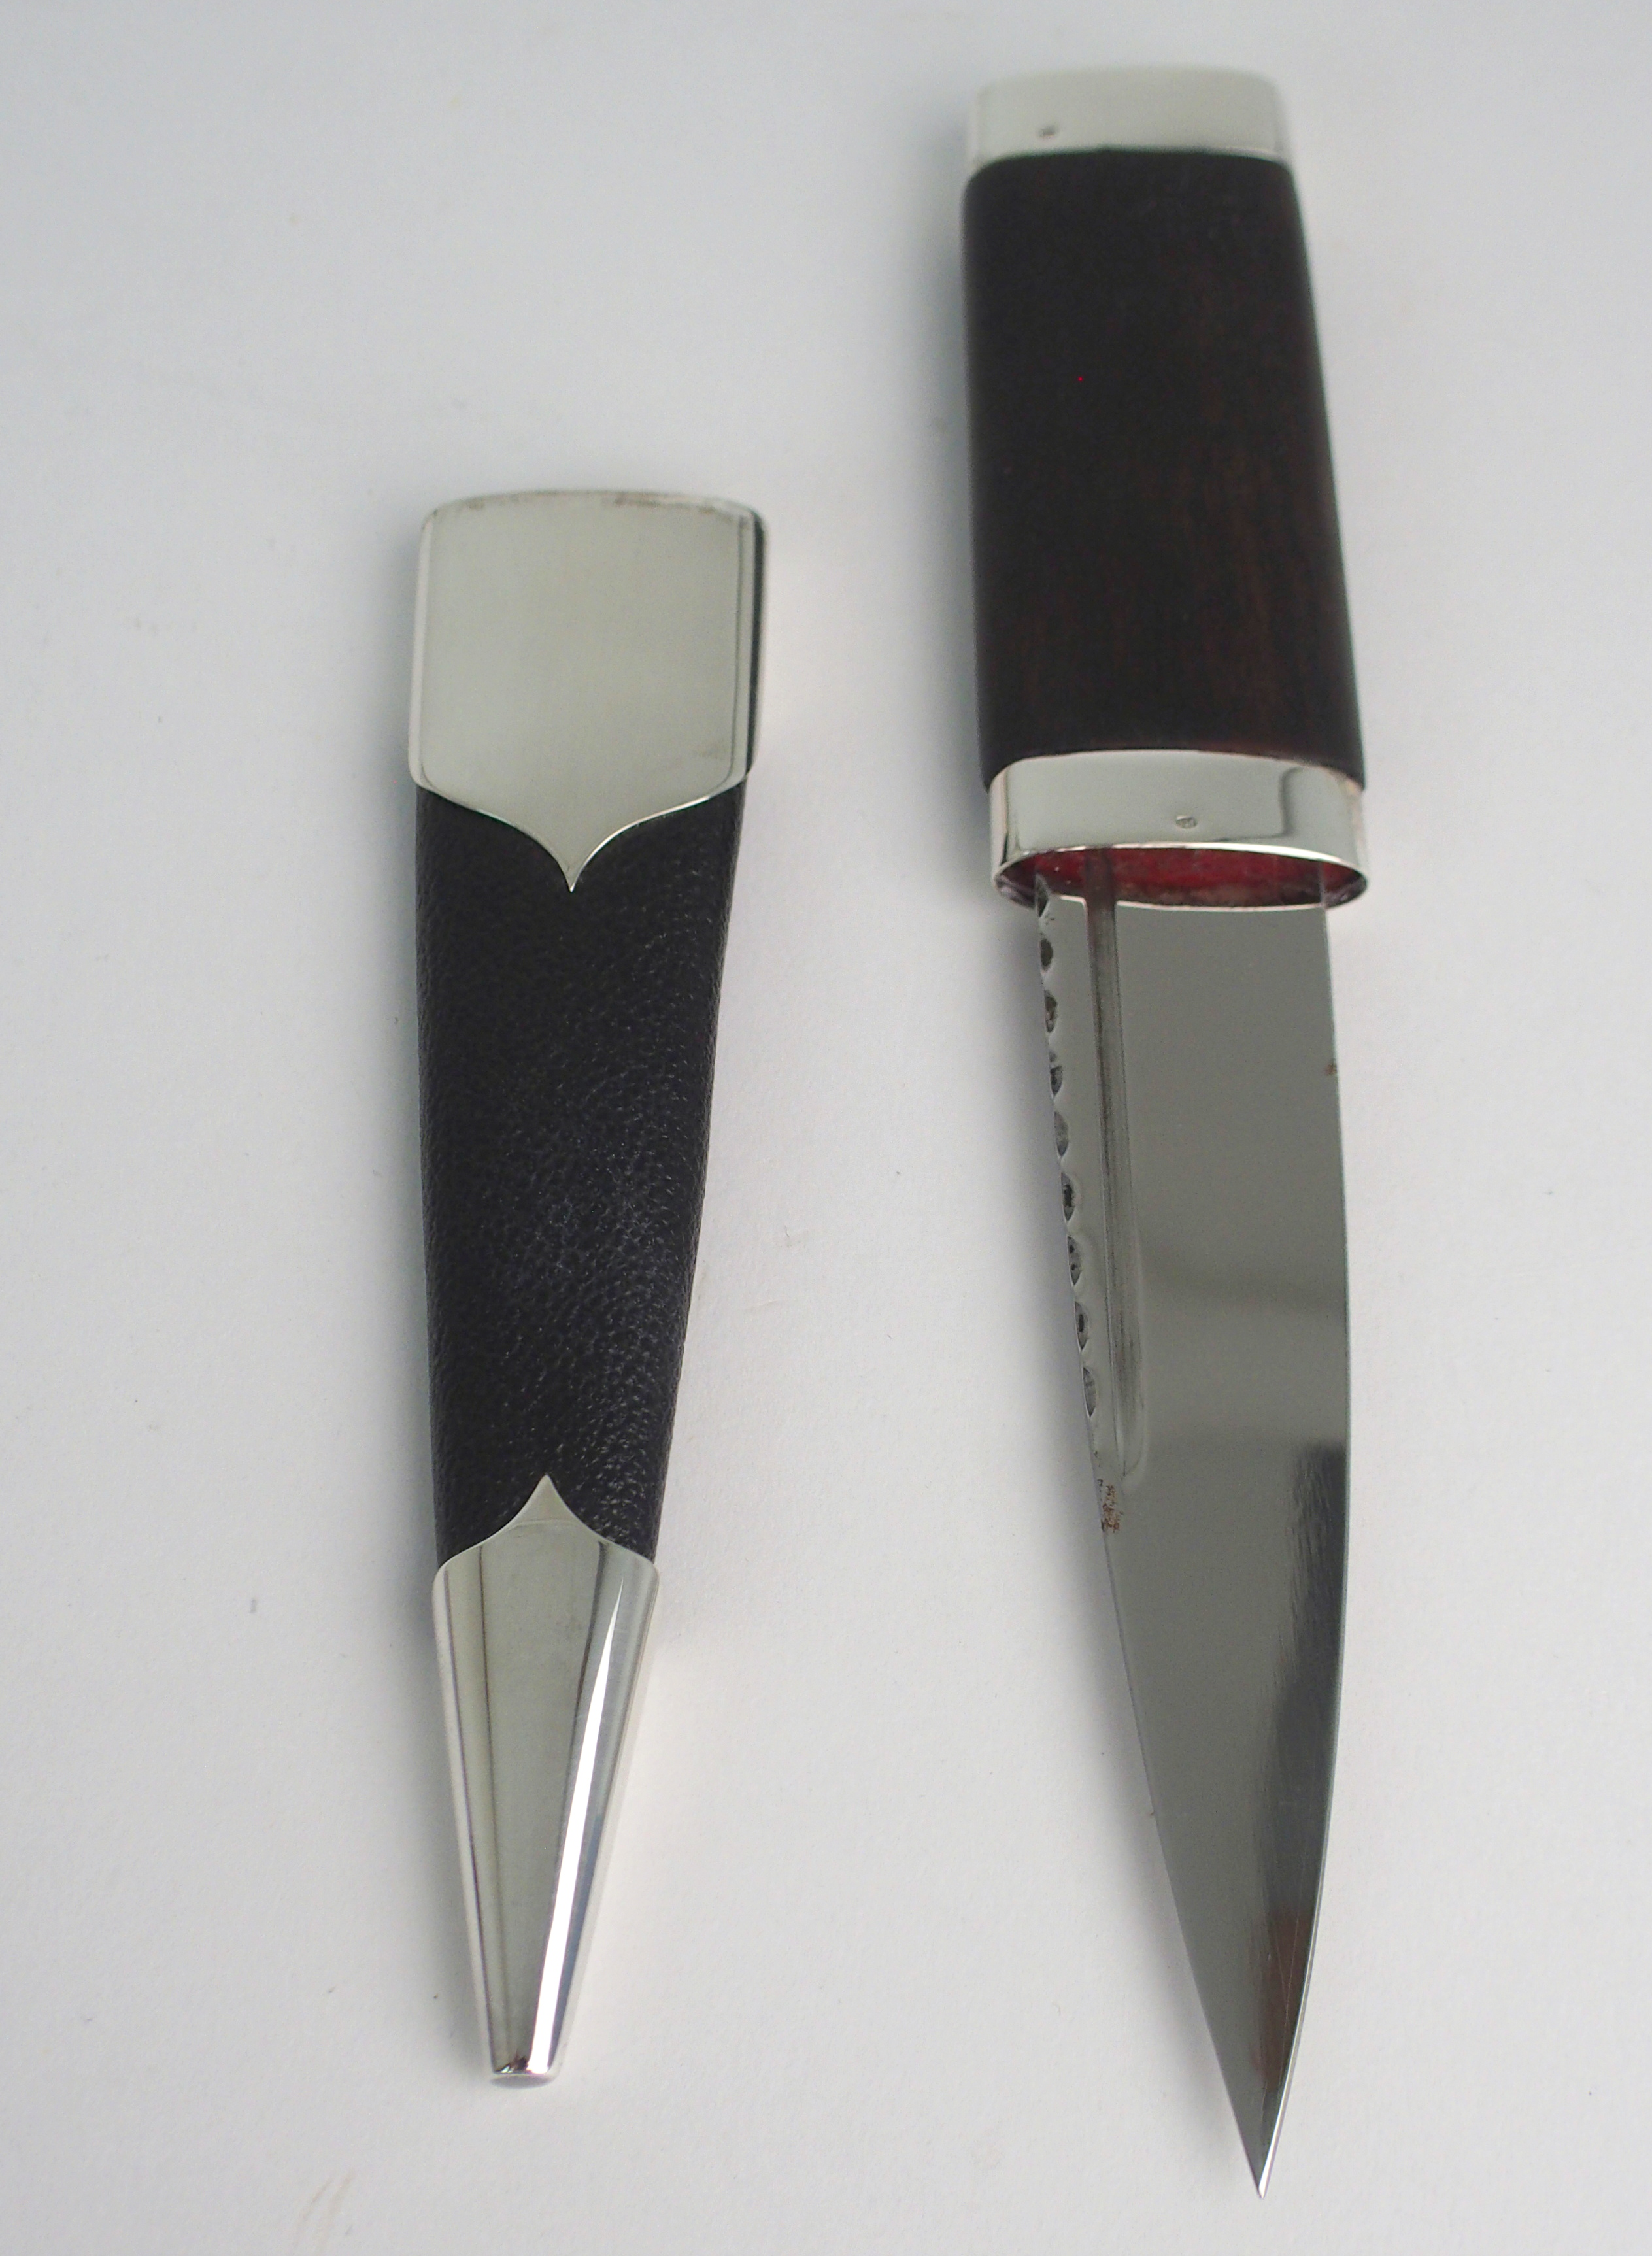 A SILVER-MOUNTED SGIAN DUBH BY HAMILTON & INCHES with black goatskin scabbard and hand carved - Image 2 of 3